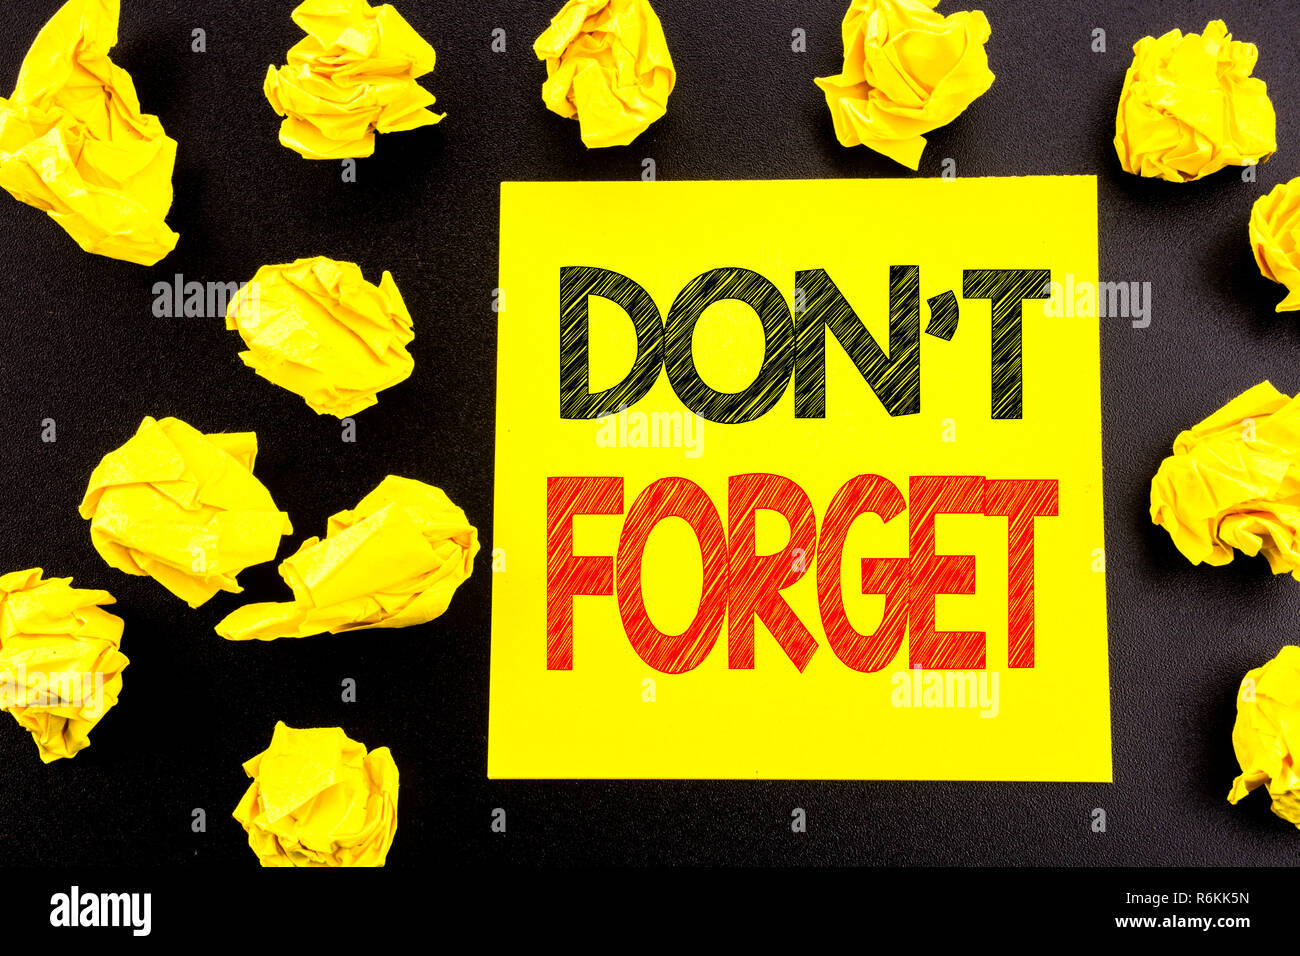 Conceptual hand writing text showing Do Not Forget. Business concept for Don t memory Remider written on sticky note paper. Folded yellow papers on the background - Stock Image